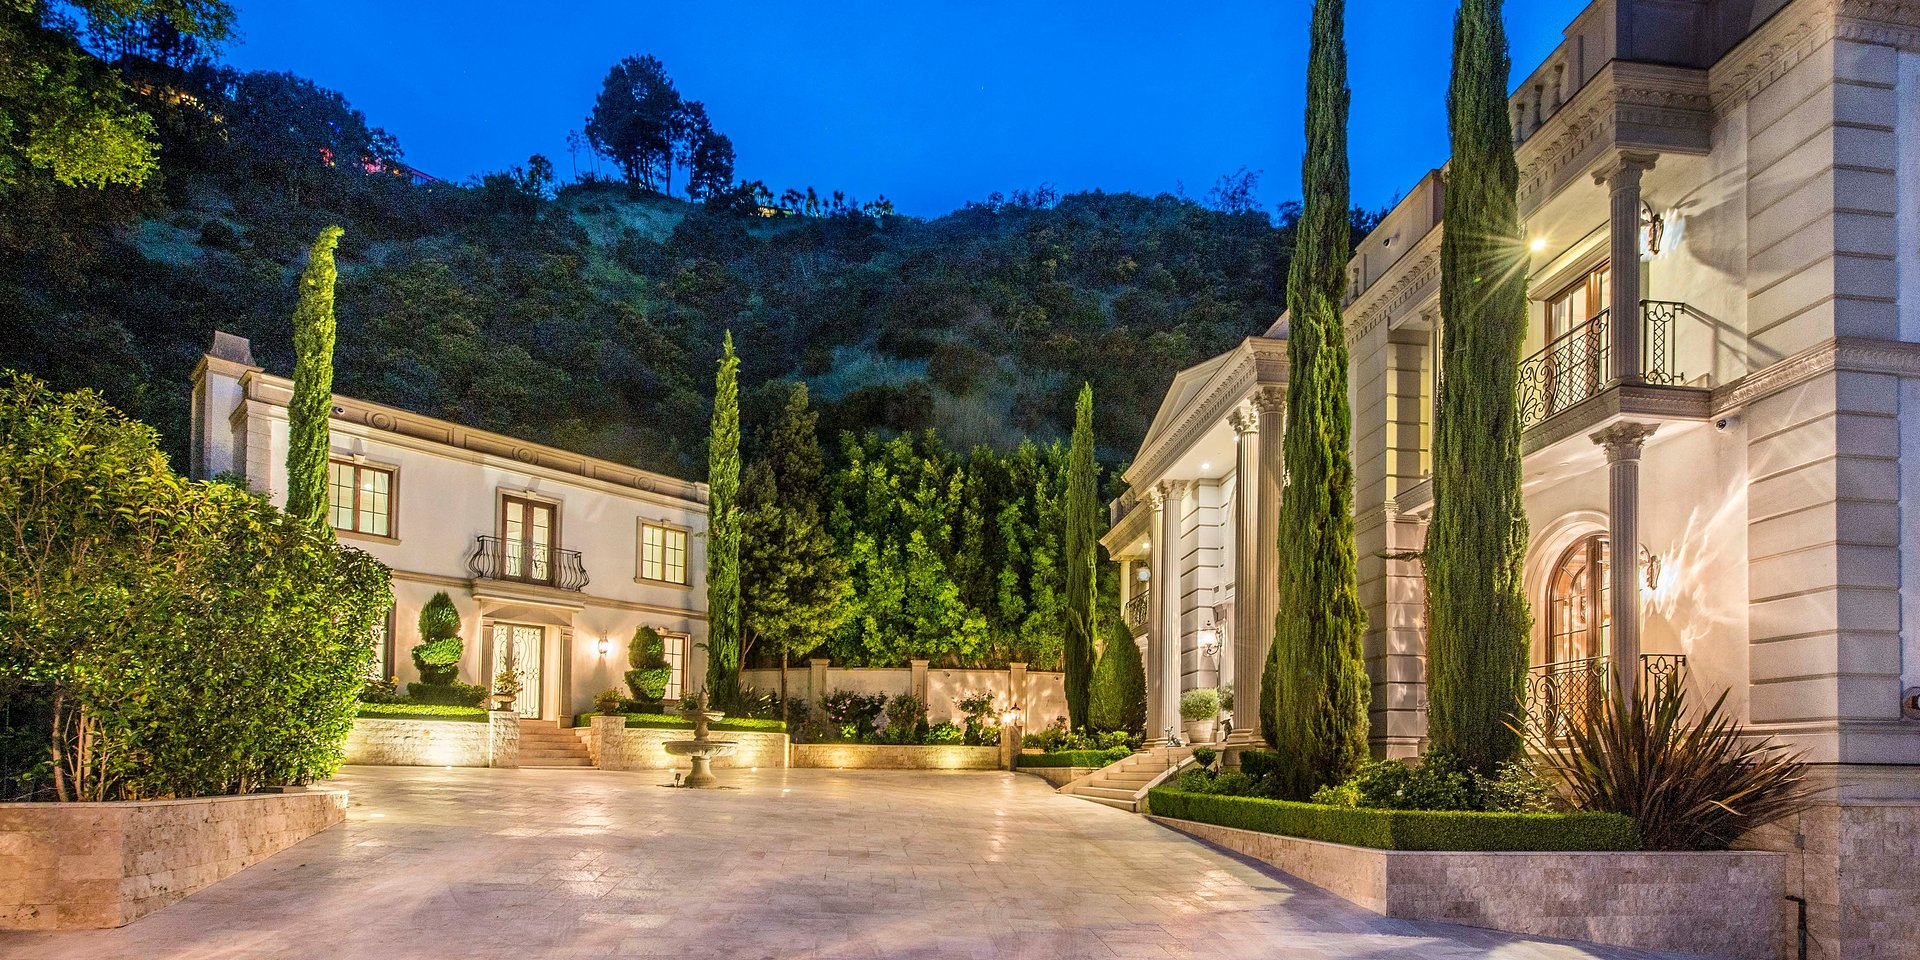 Coldwell Banker Realty Lists Exuberant Bel Air Estate Overlooking Stone Canyon Reservoir for $21 Million